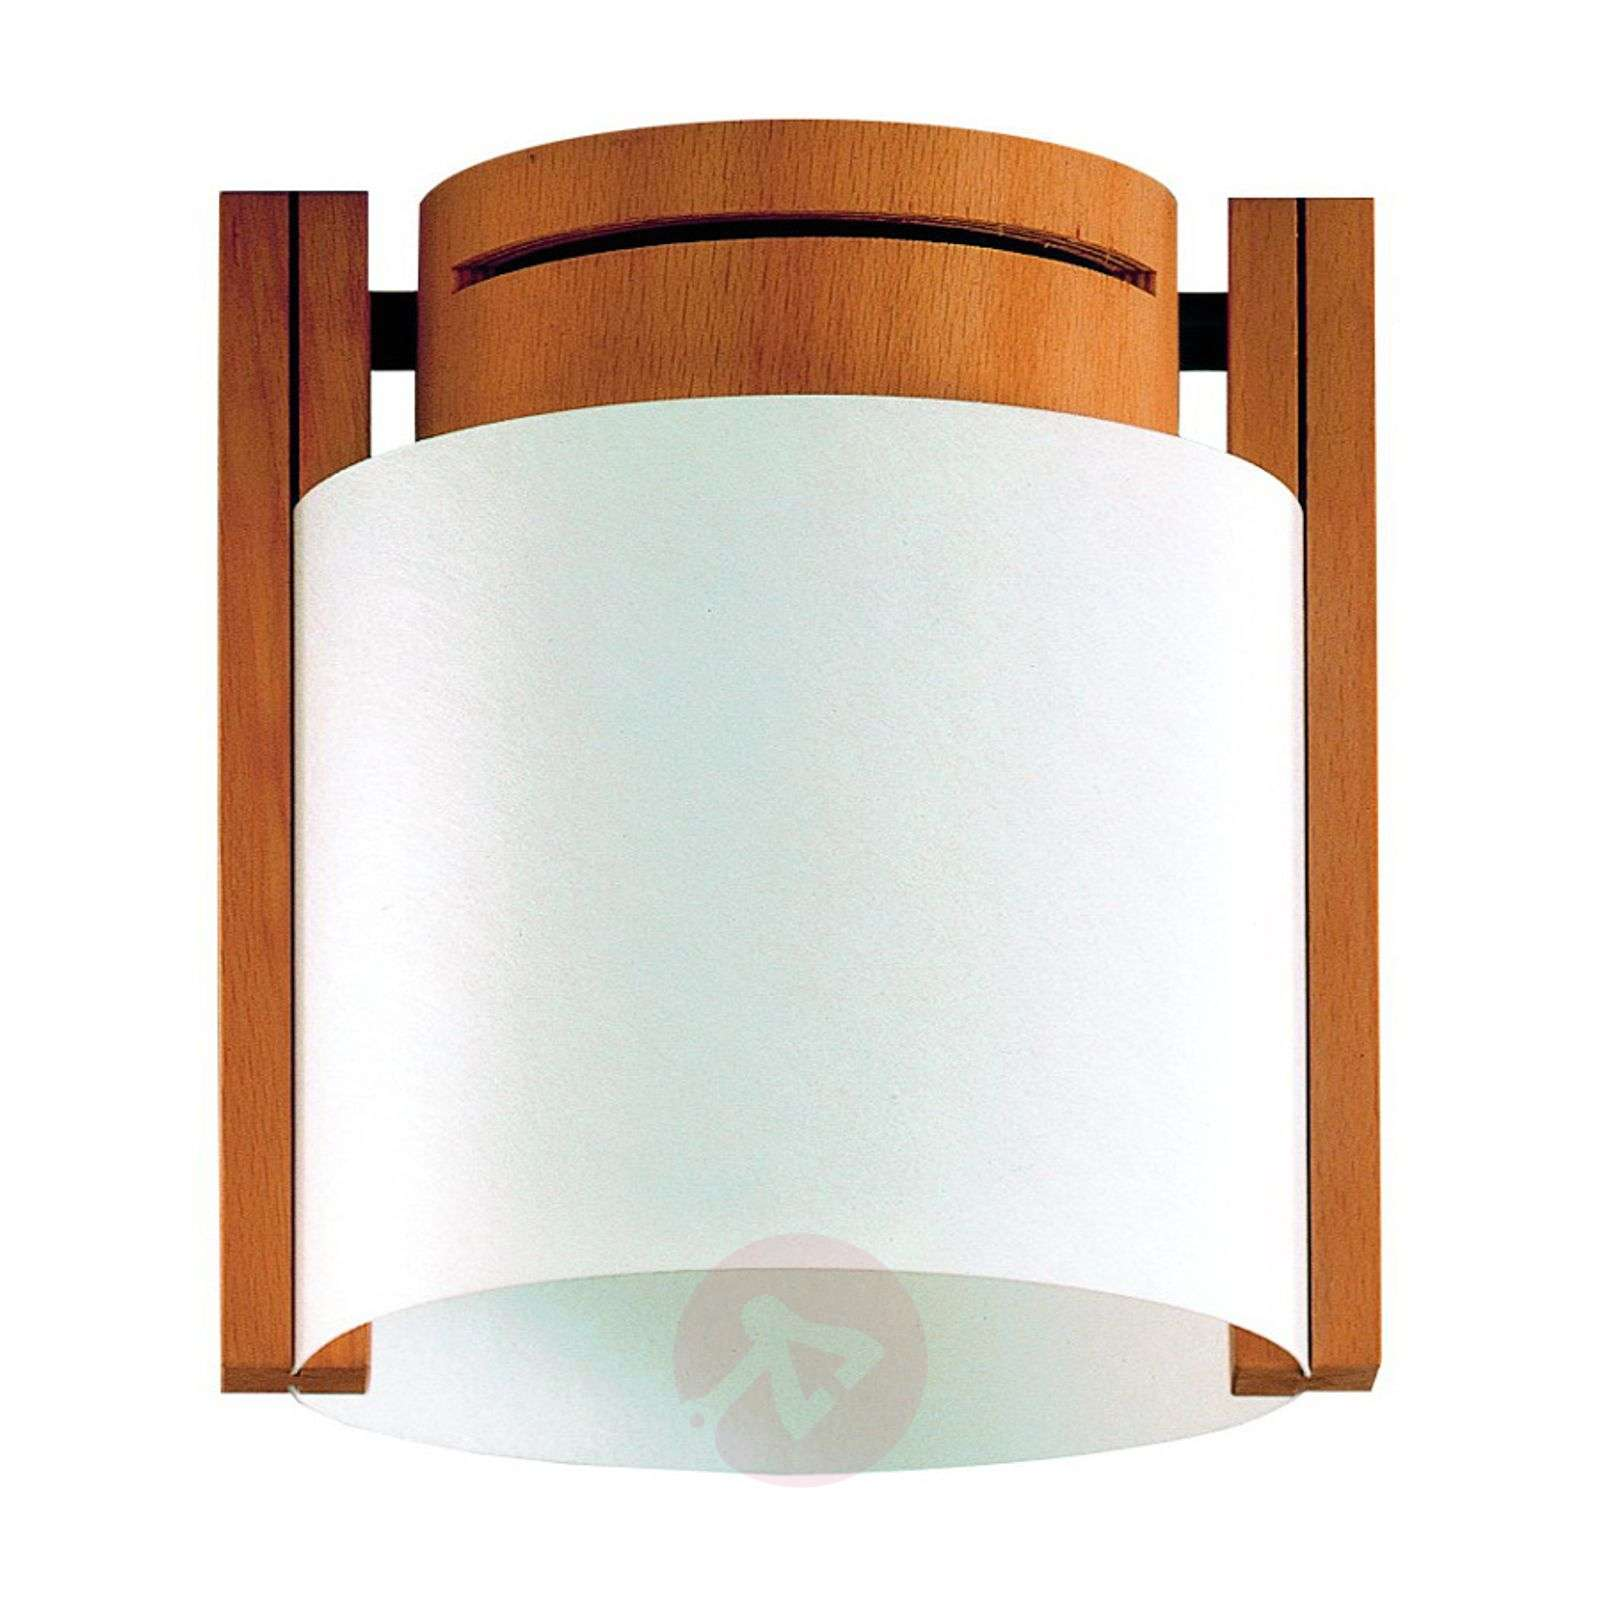 Timeless ceiling light drum lights timeless ceiling light drum 2600069 01 mozeypictures Choice Image